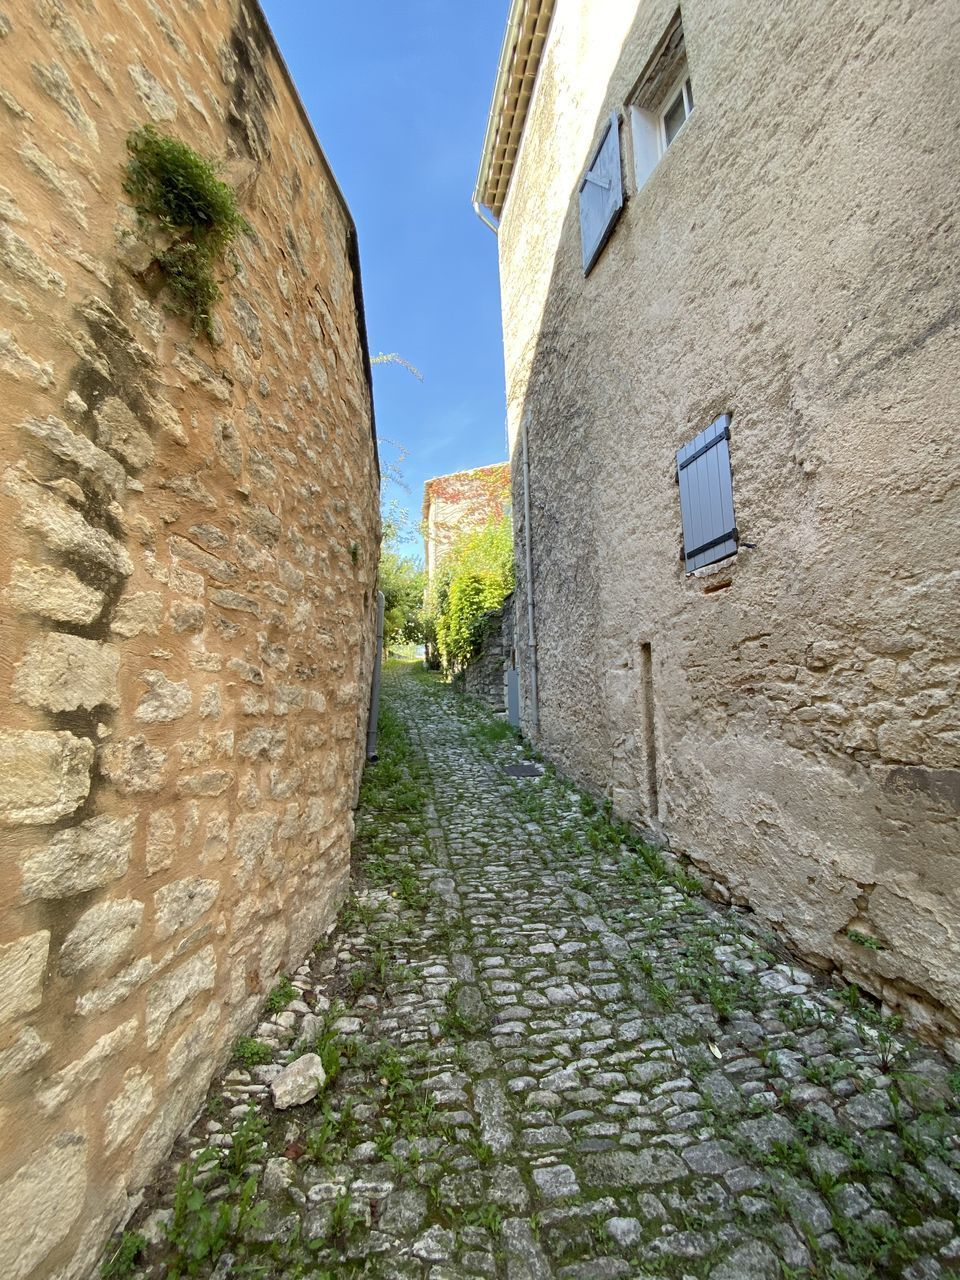 built structure, architecture, building exterior, wall, wall - building feature, day, no people, stone wall, building, the way forward, sky, nature, footpath, old, direction, street, cobblestone, outdoors, alley, plant